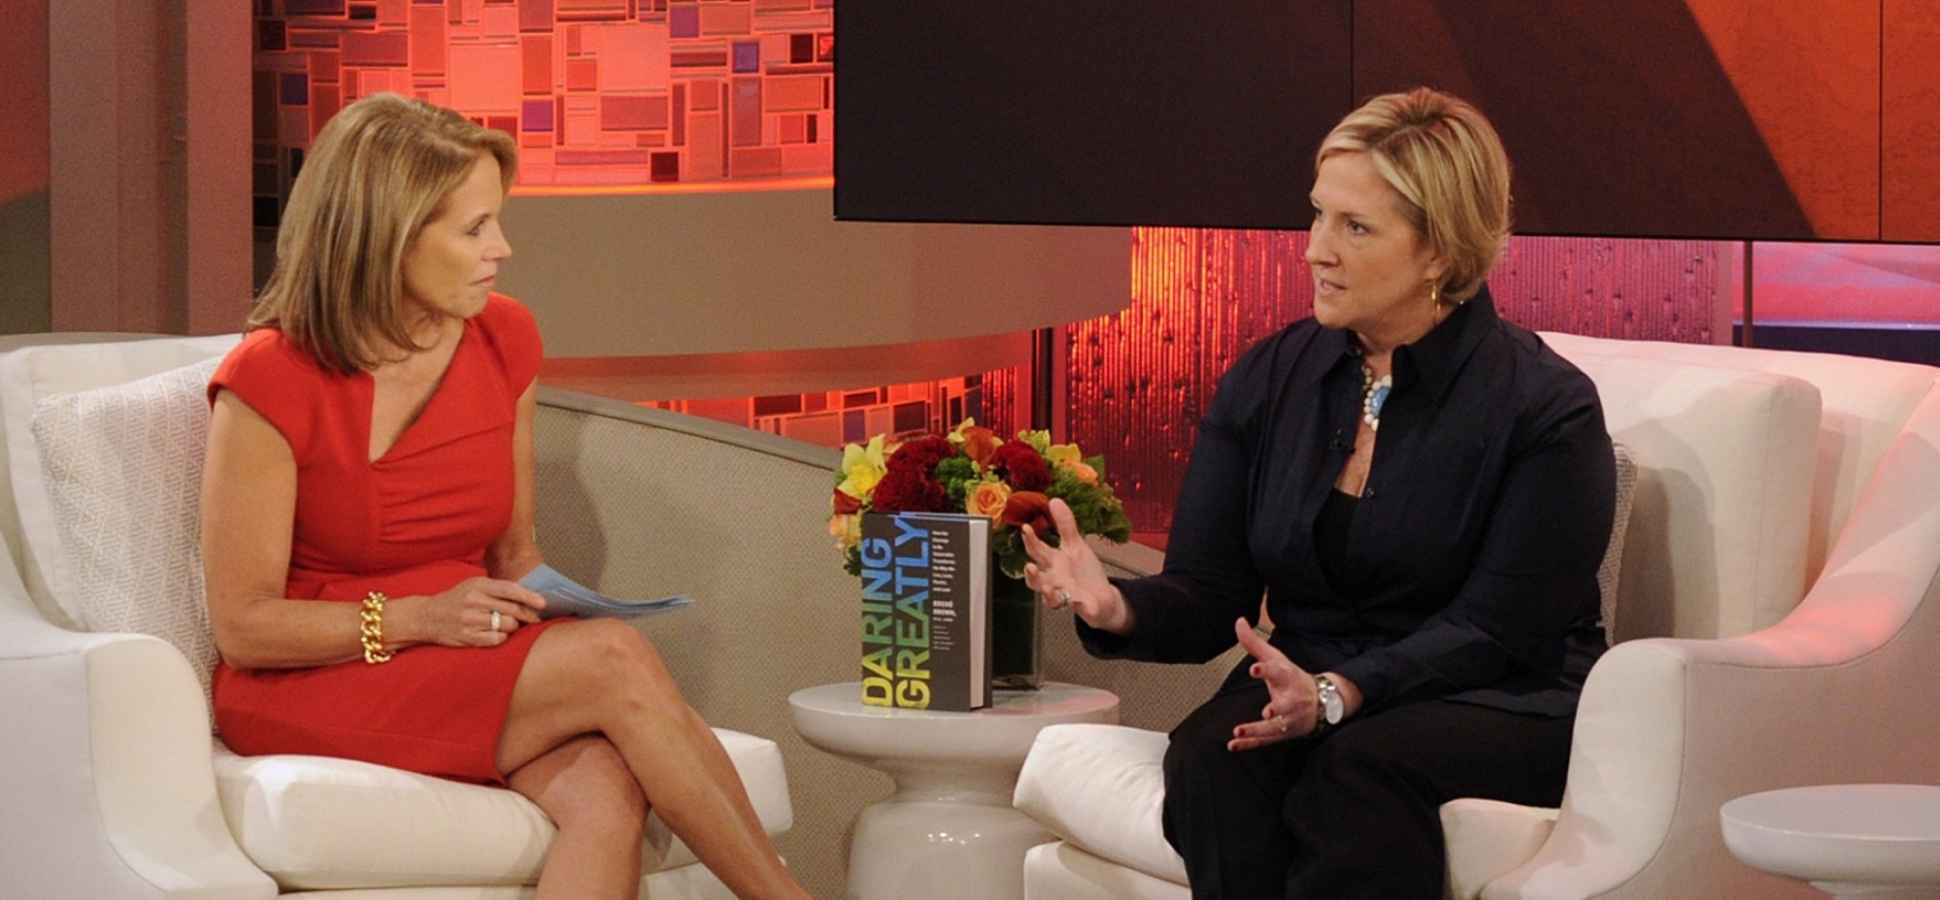 Brene Brown on the 1 Question You Need to Ask About People You Truly Dislike